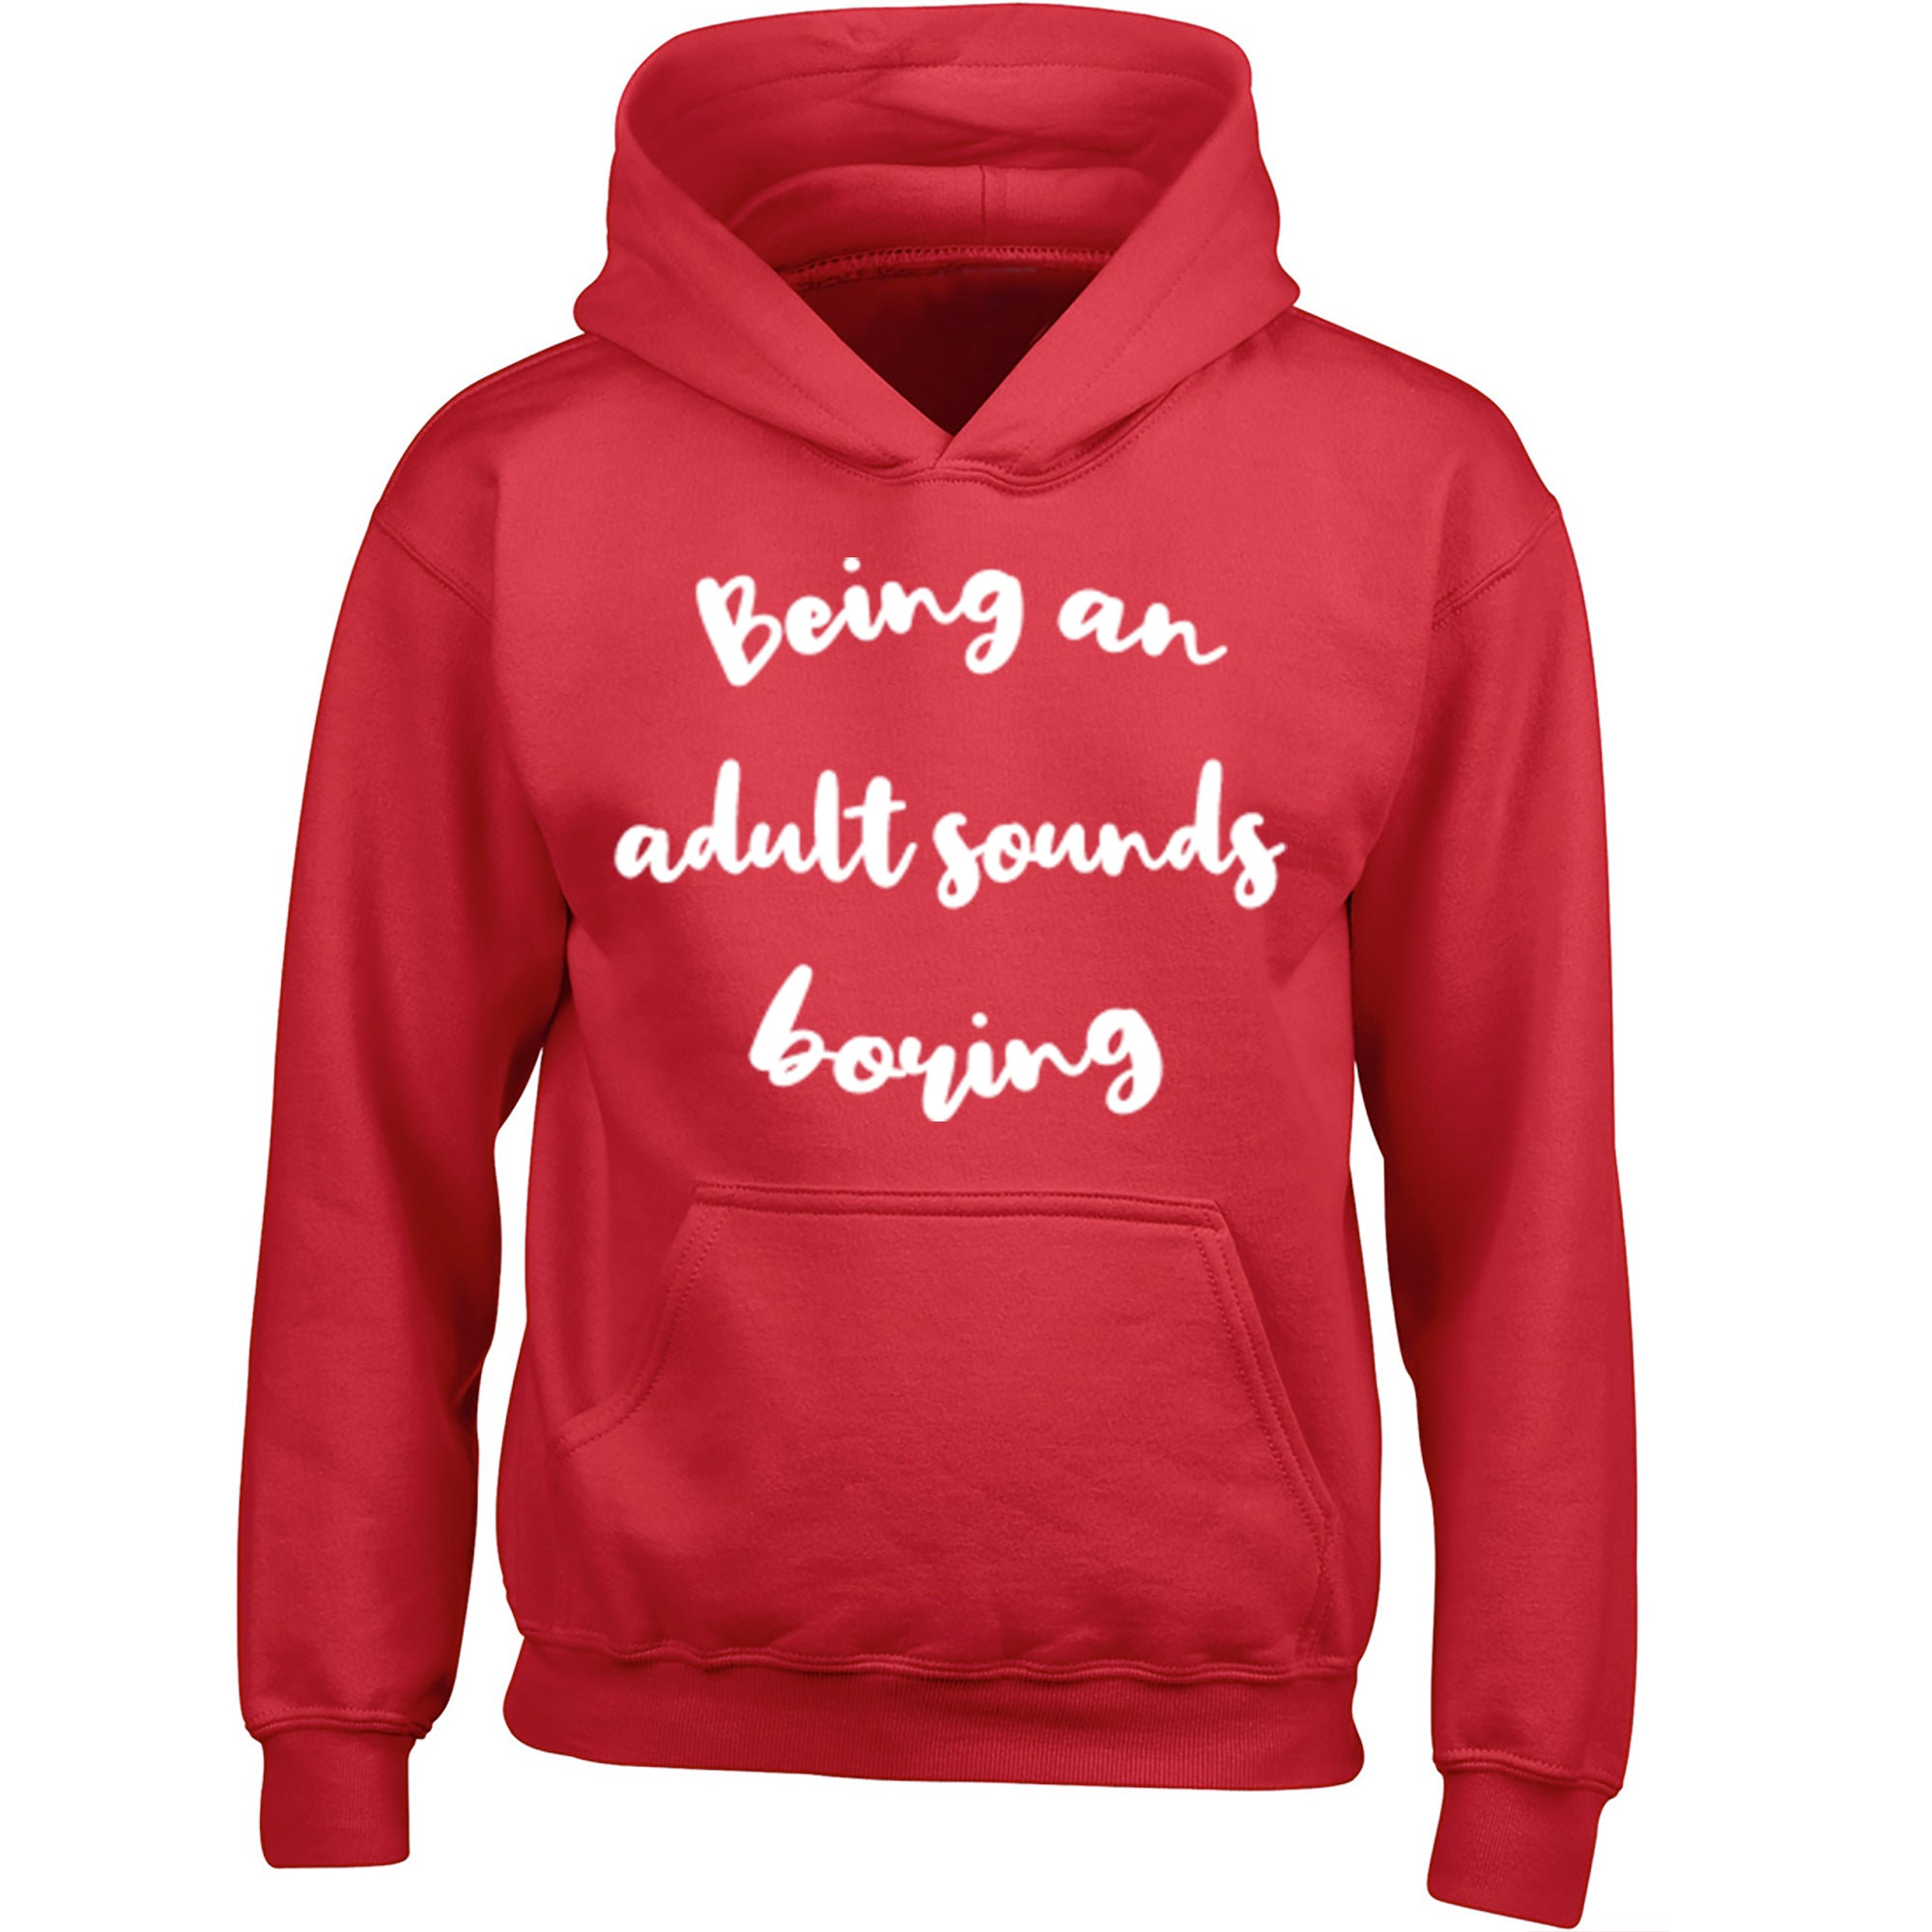 Being An Adult Sounds Boring Childrens Ages 3/4-12/14 Unisex Hoodie S0351 - Illustrated Identity Ltd.